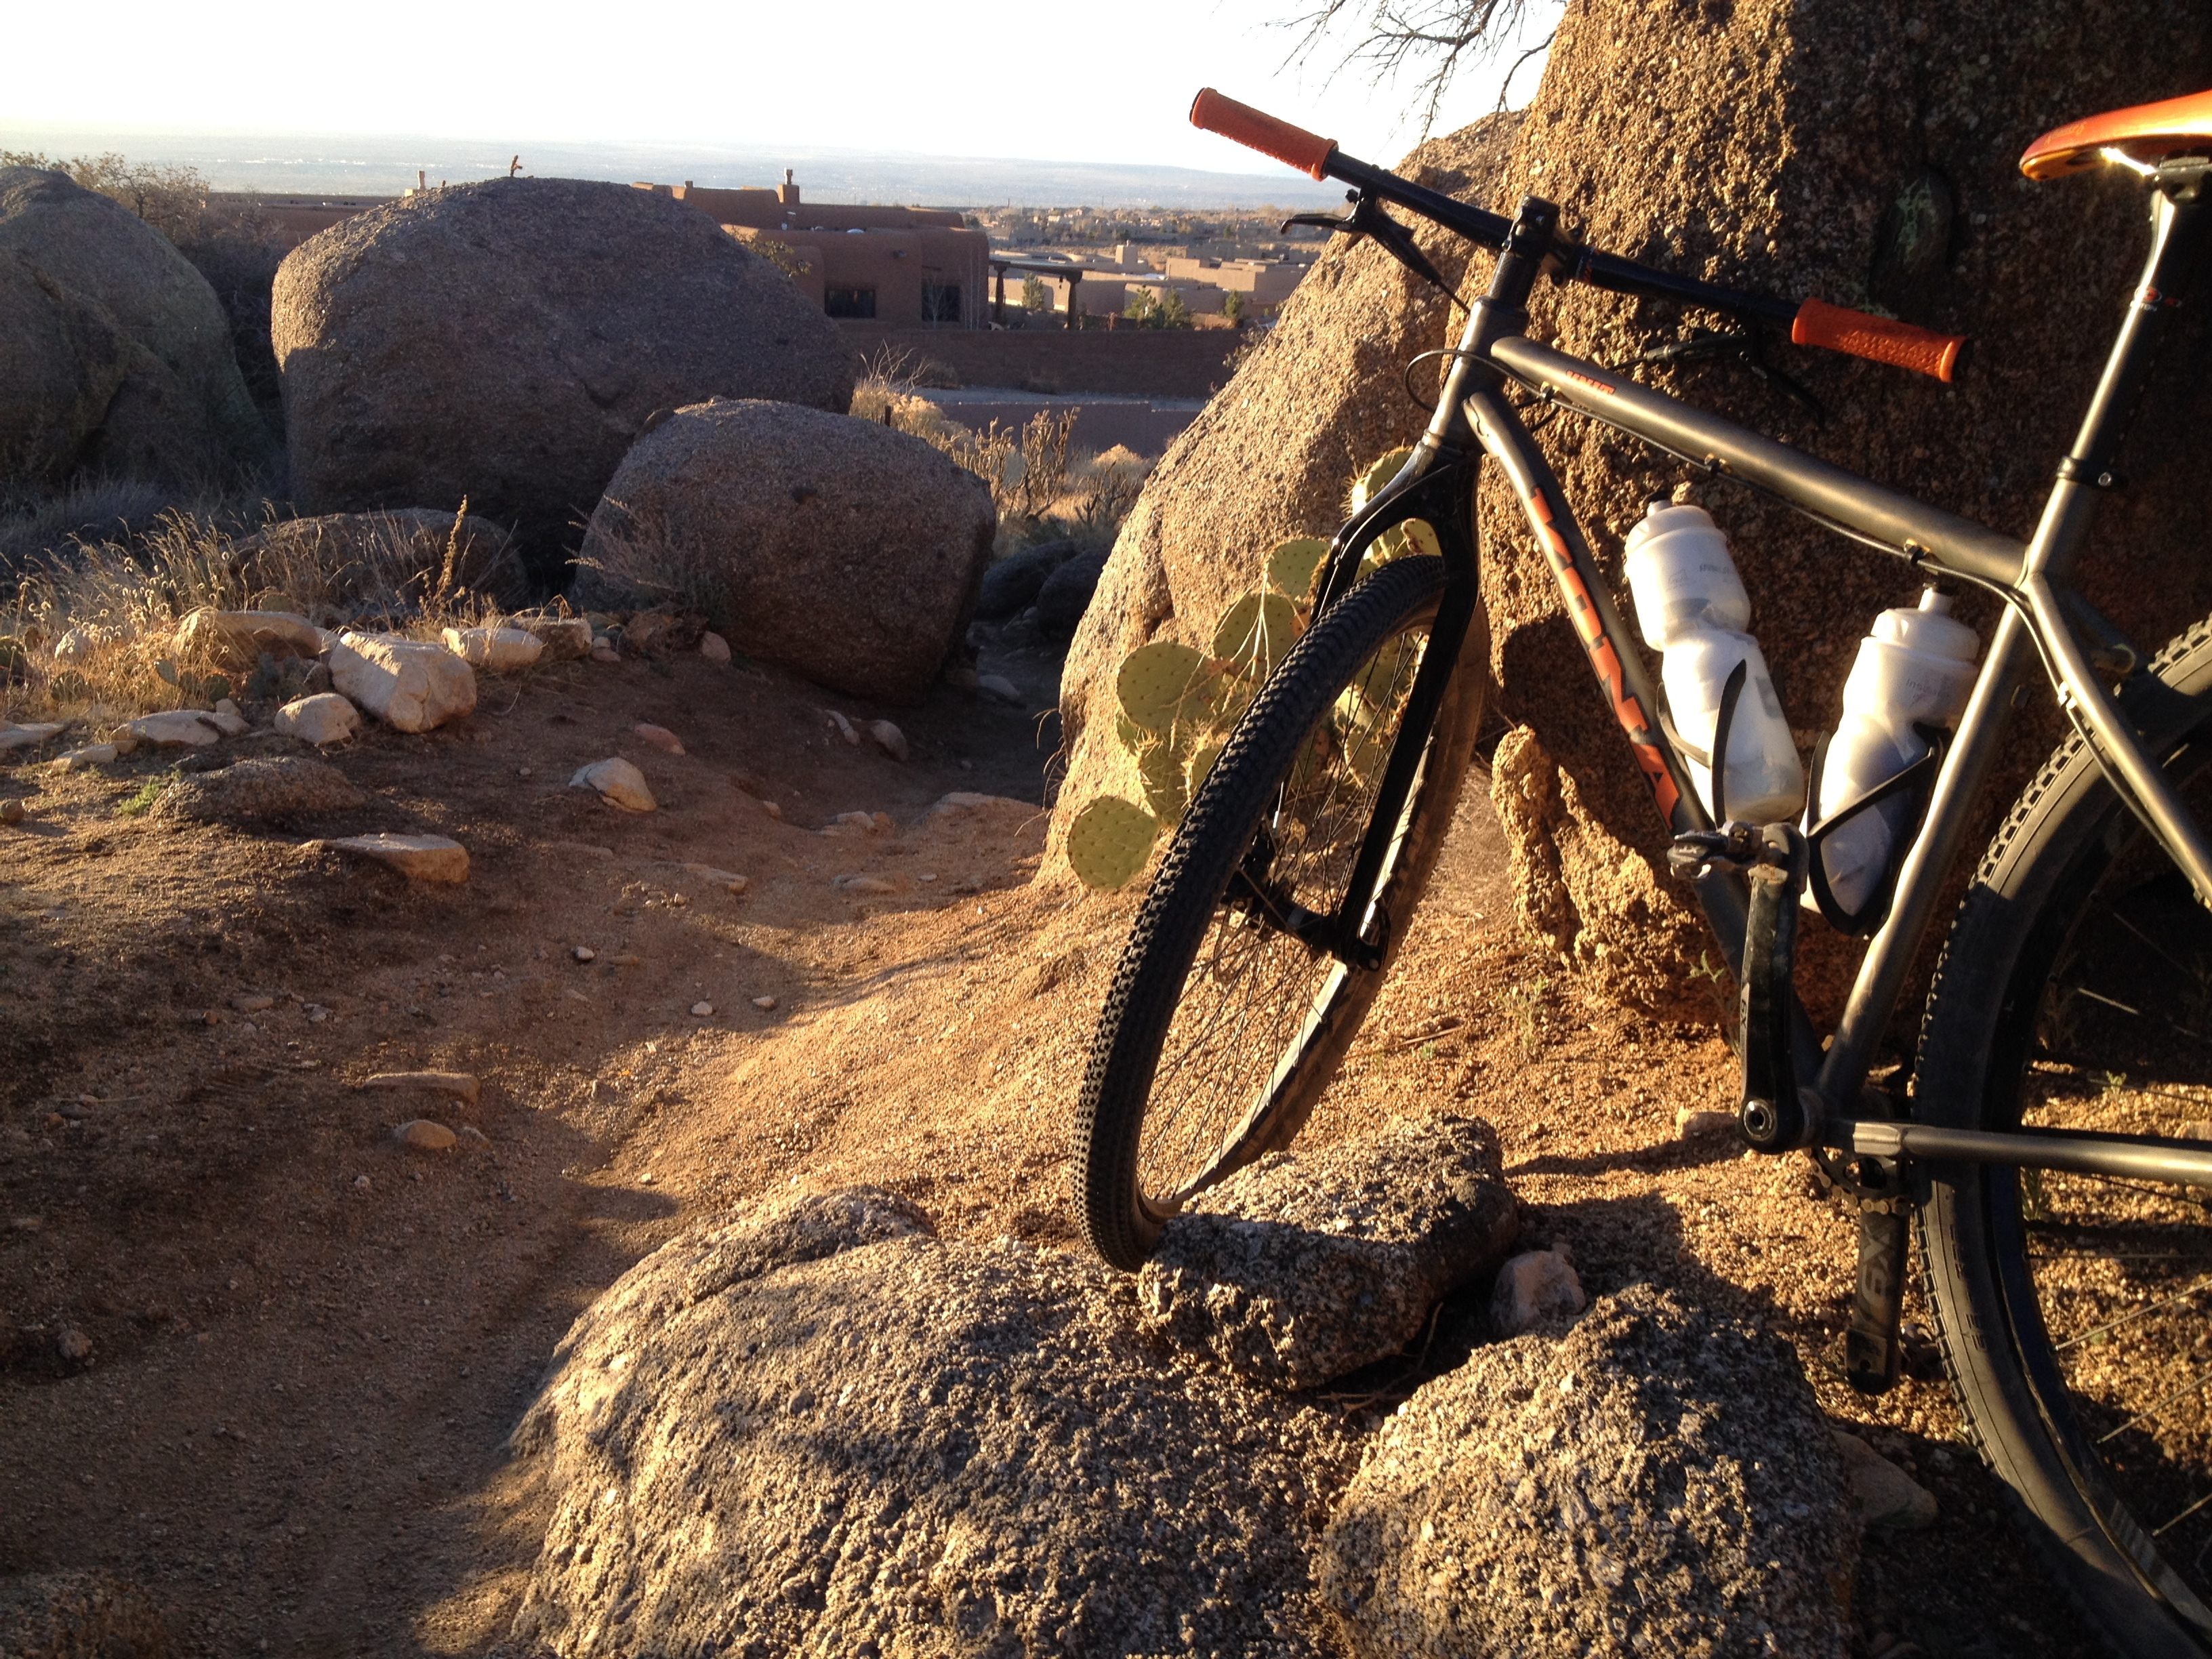 One of the tight, rocky sections in the Sandia Foothills that will jar your bones on a fully rigid mountain bike.